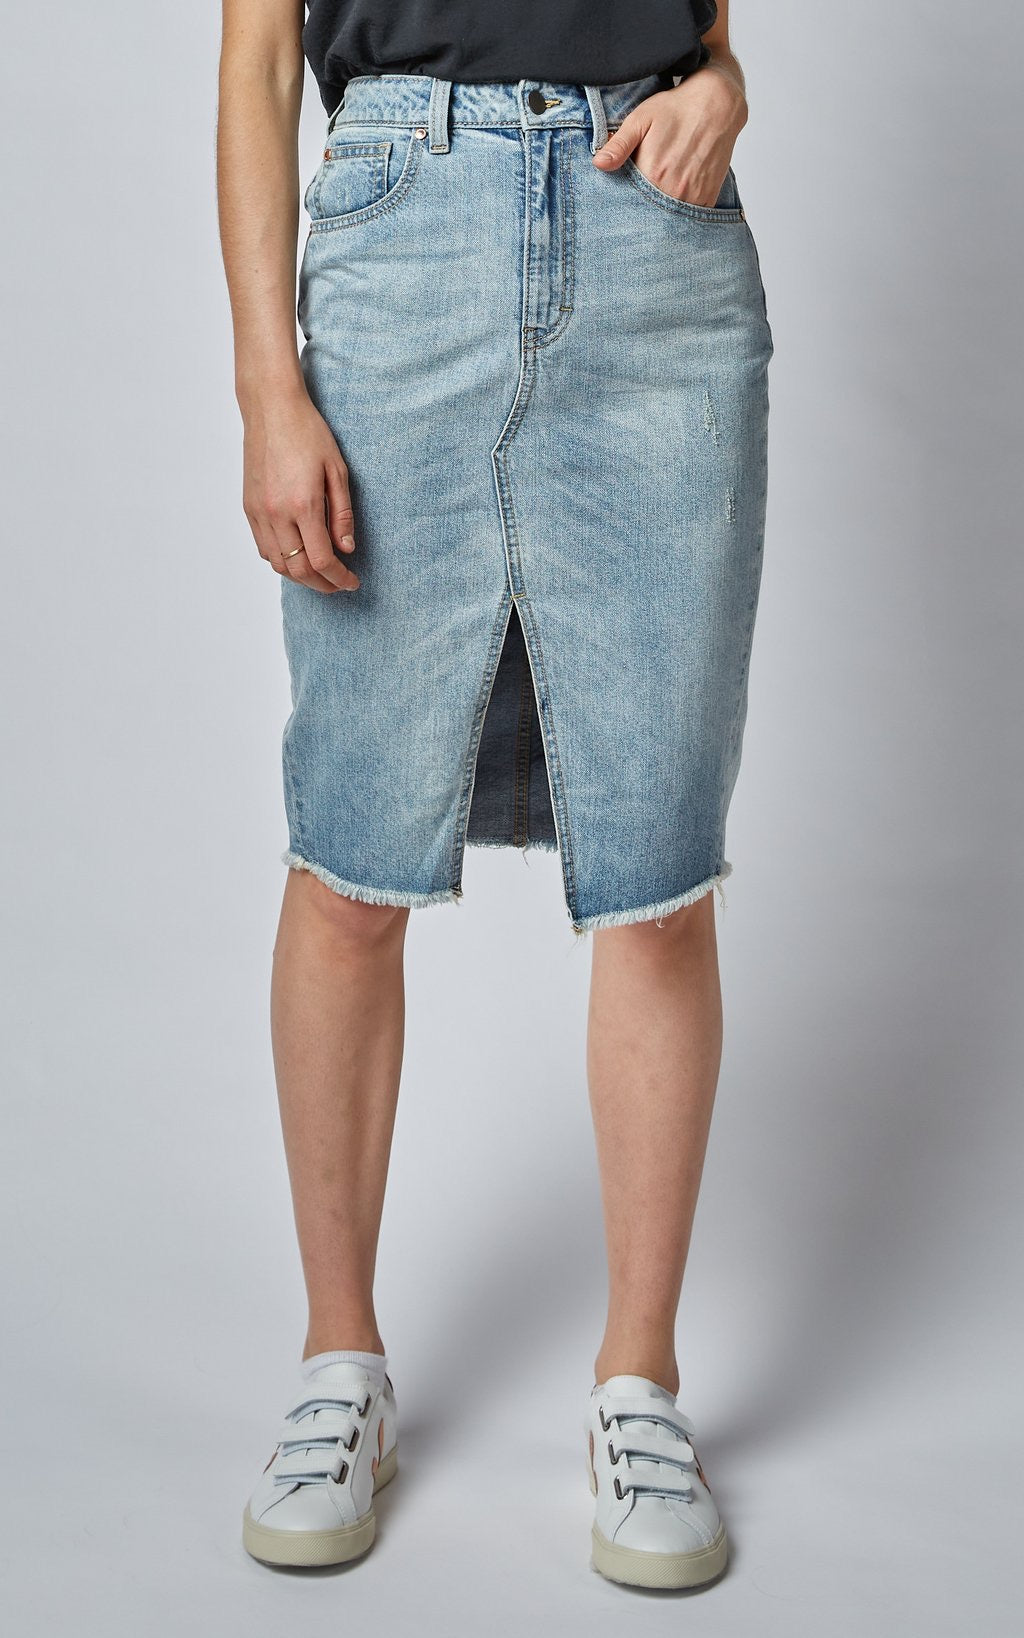 Dricoper - Worn High Rise Revival Skirt